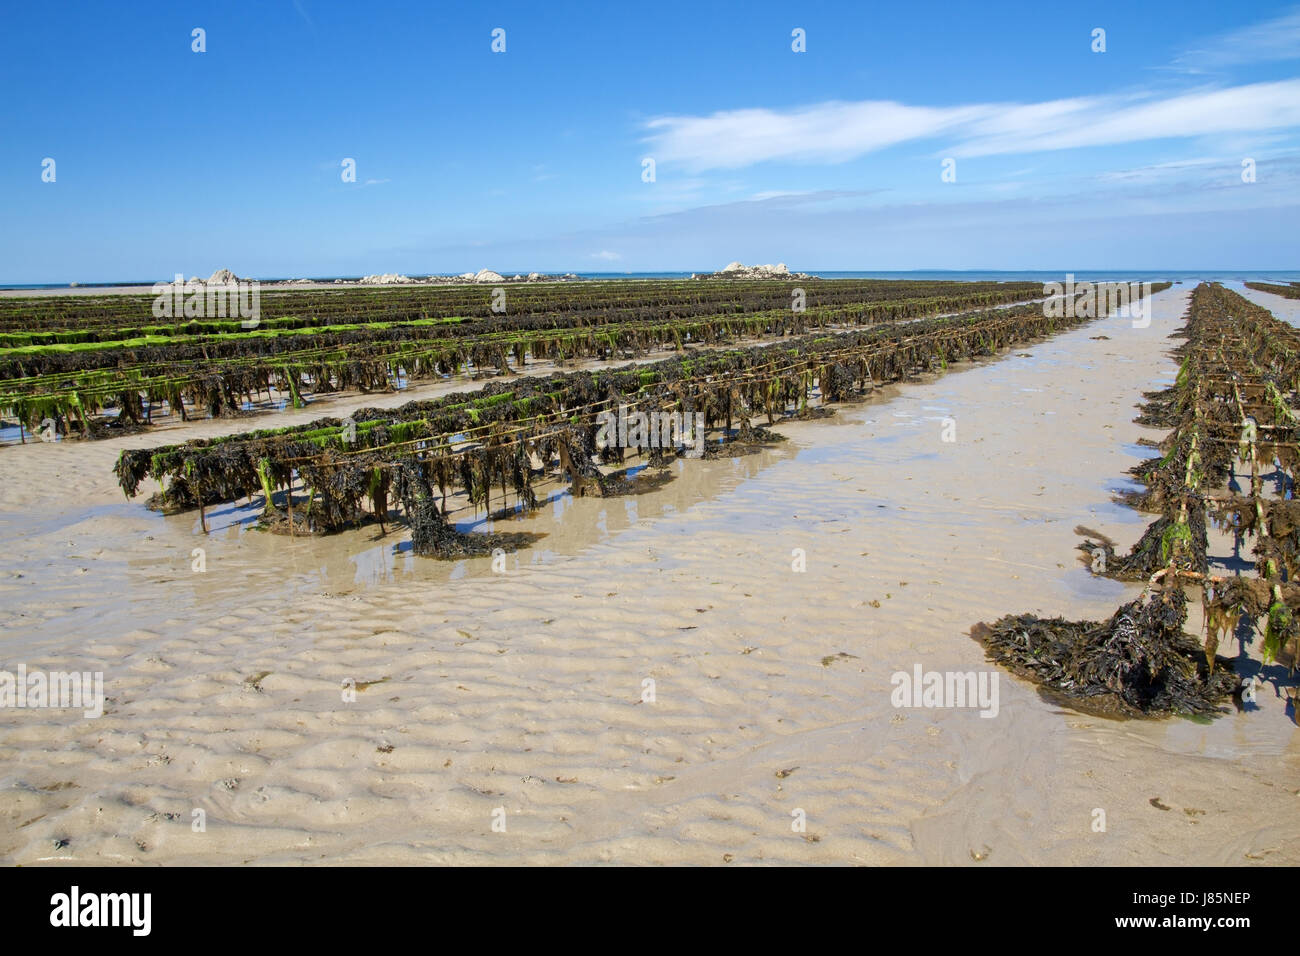 jersey bed of oysters food aliment savoir vivre shell gastronomy algae bay Stock Photo